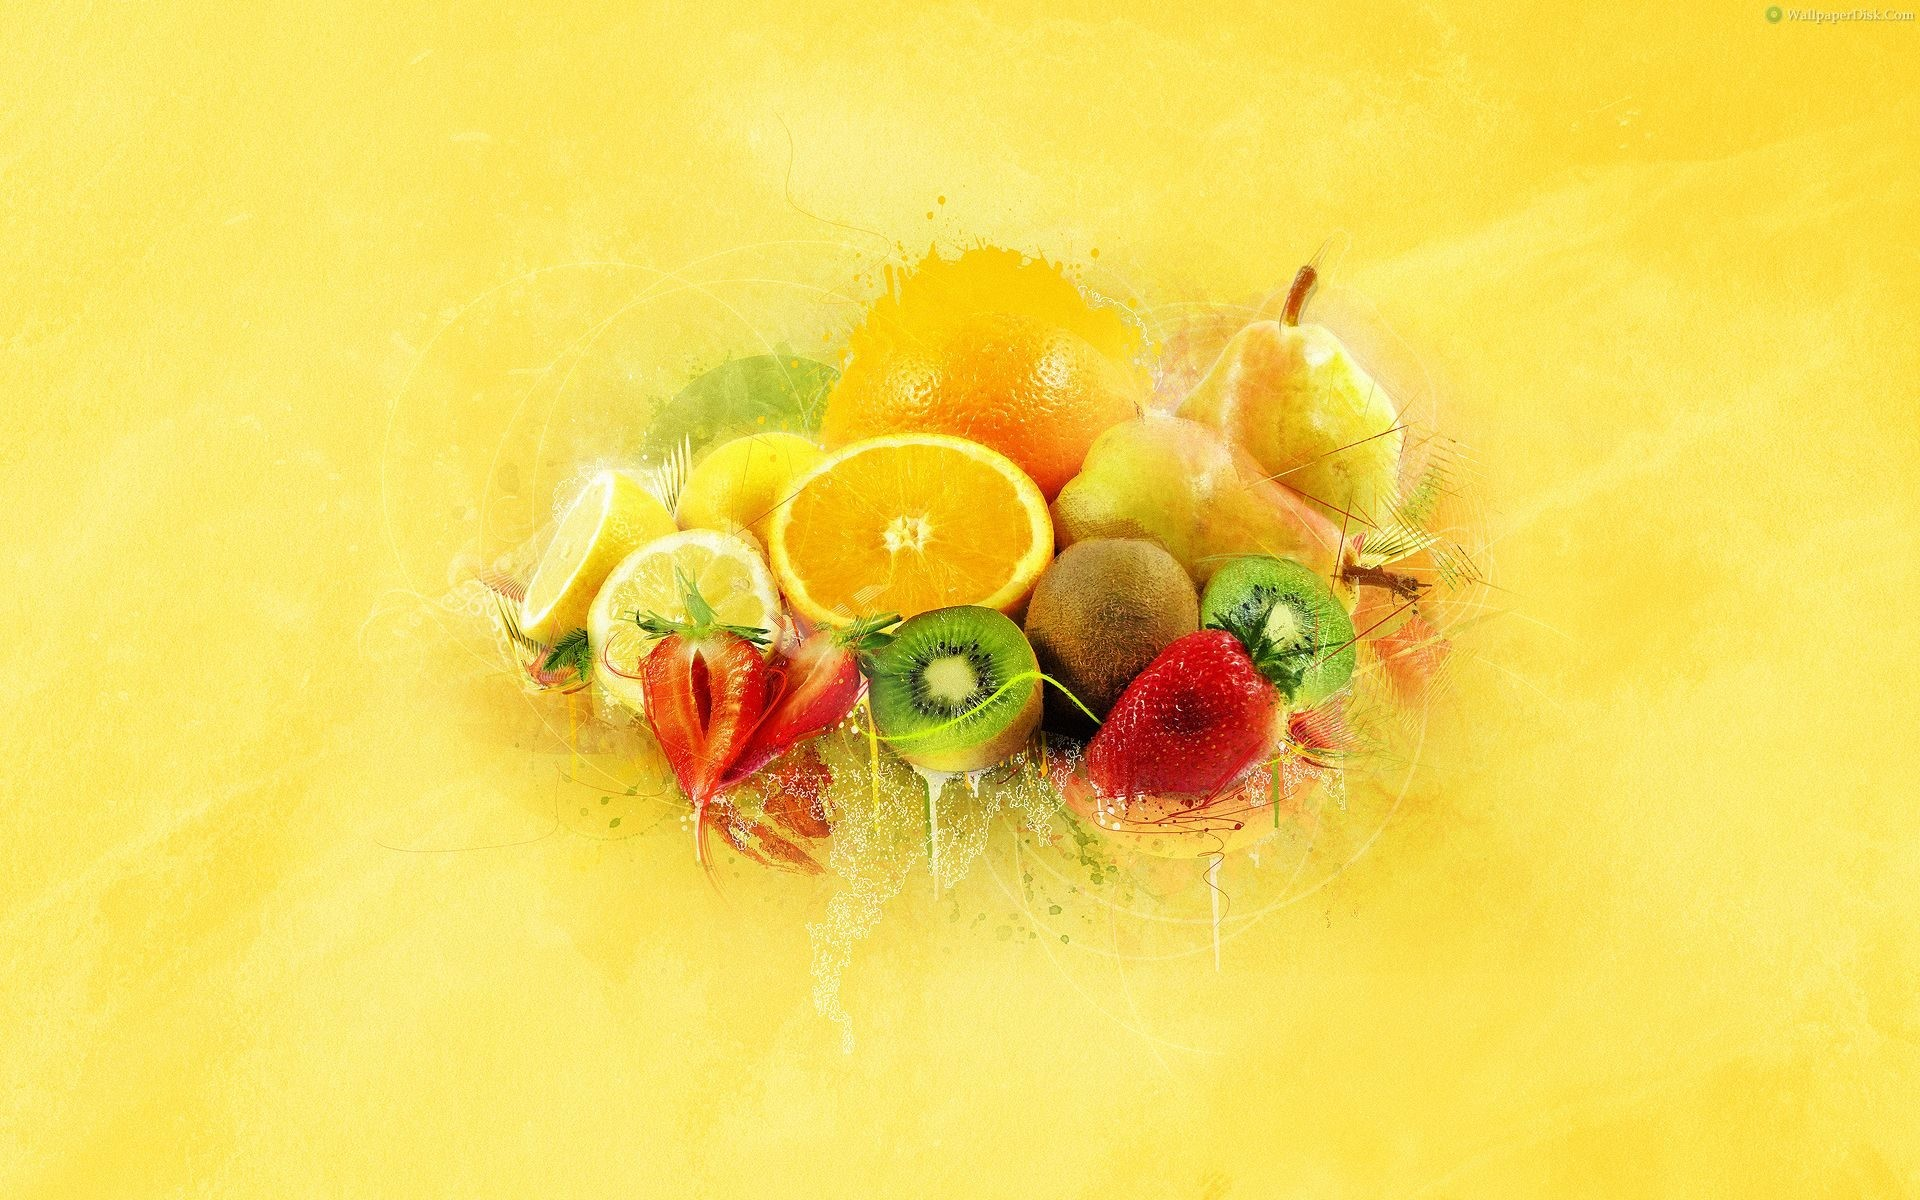 Best fruits wallpapers dekstop images